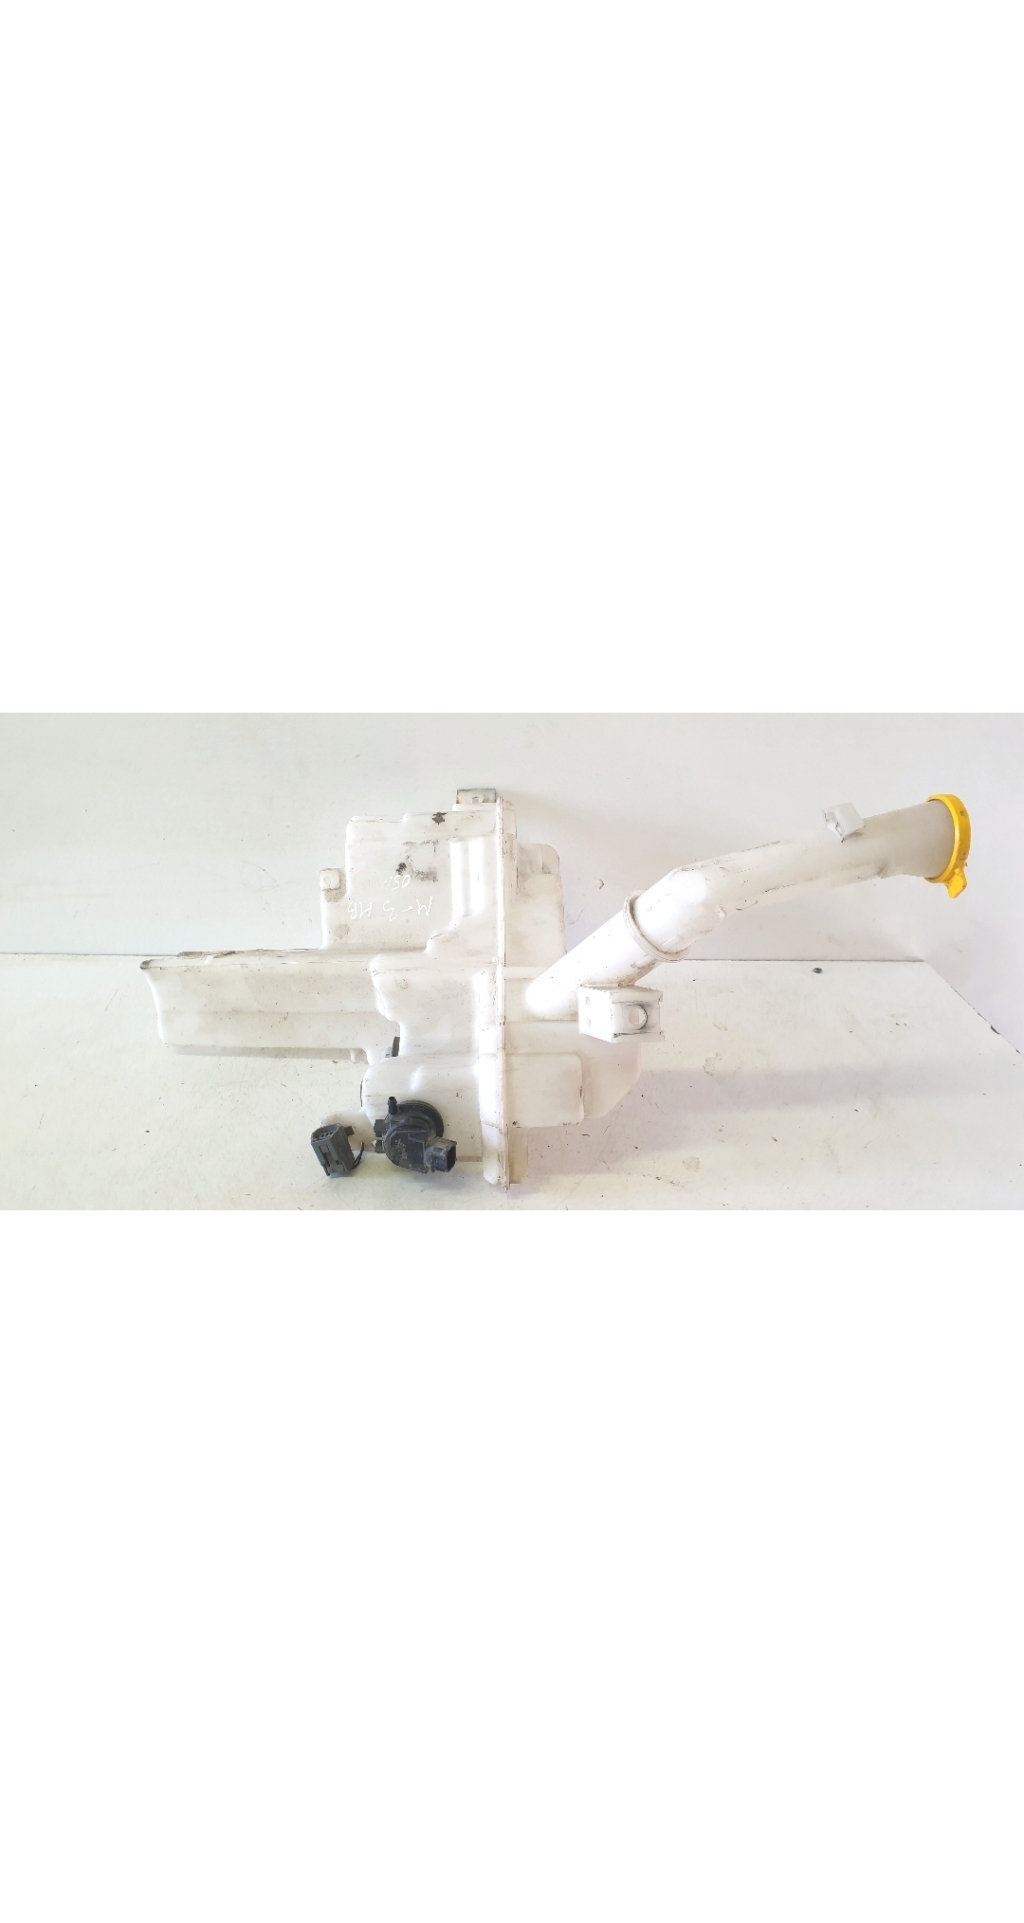 Windscreen washer tank front and its parts